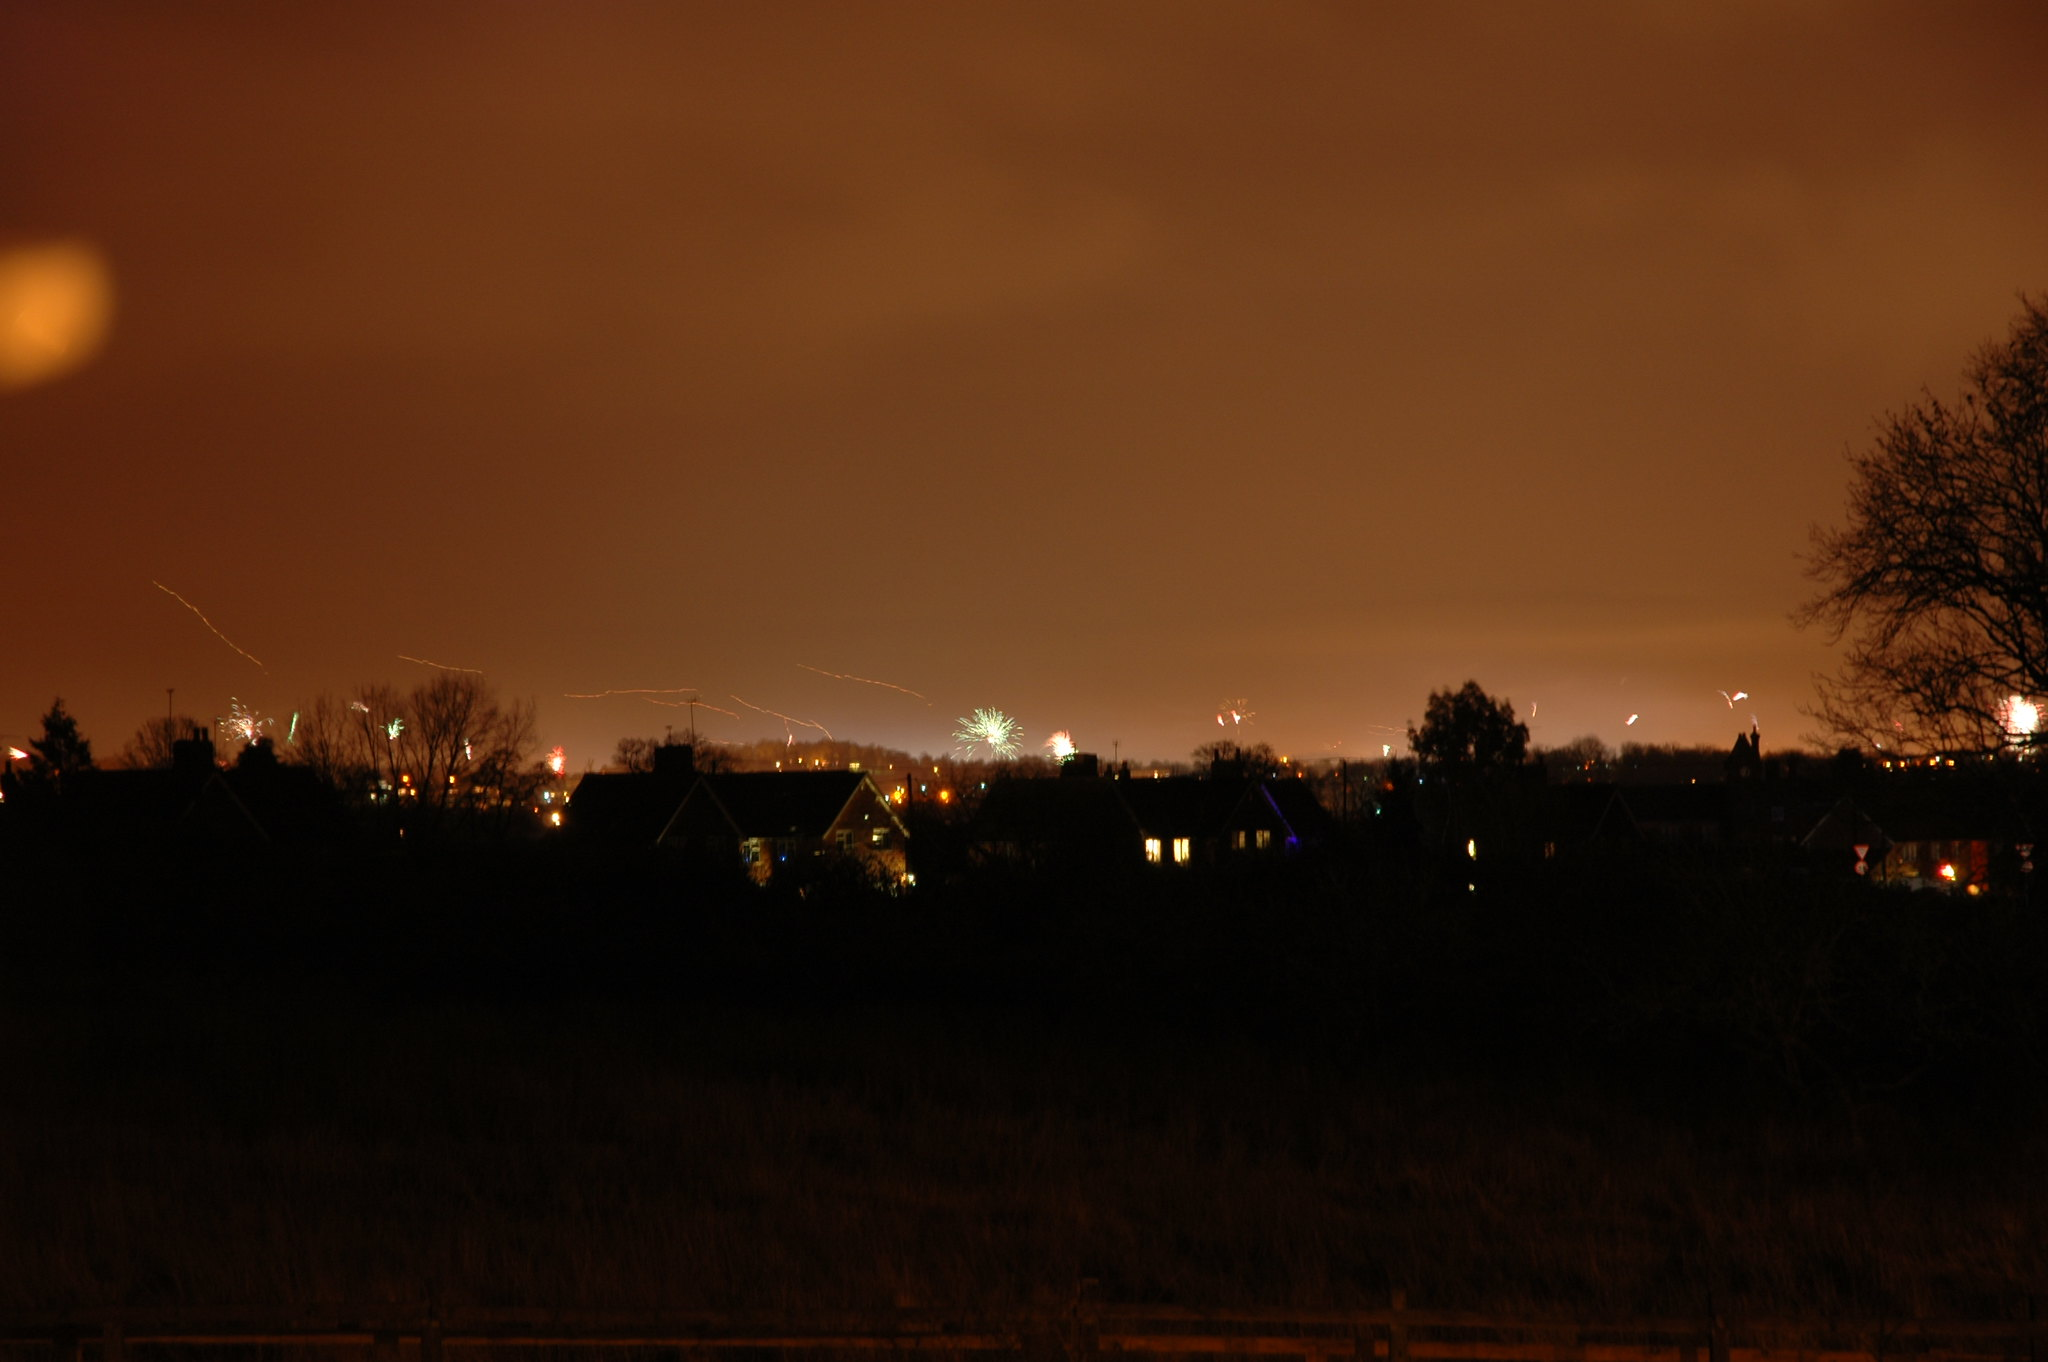 Fireworks over Reading, a moody nightscape.